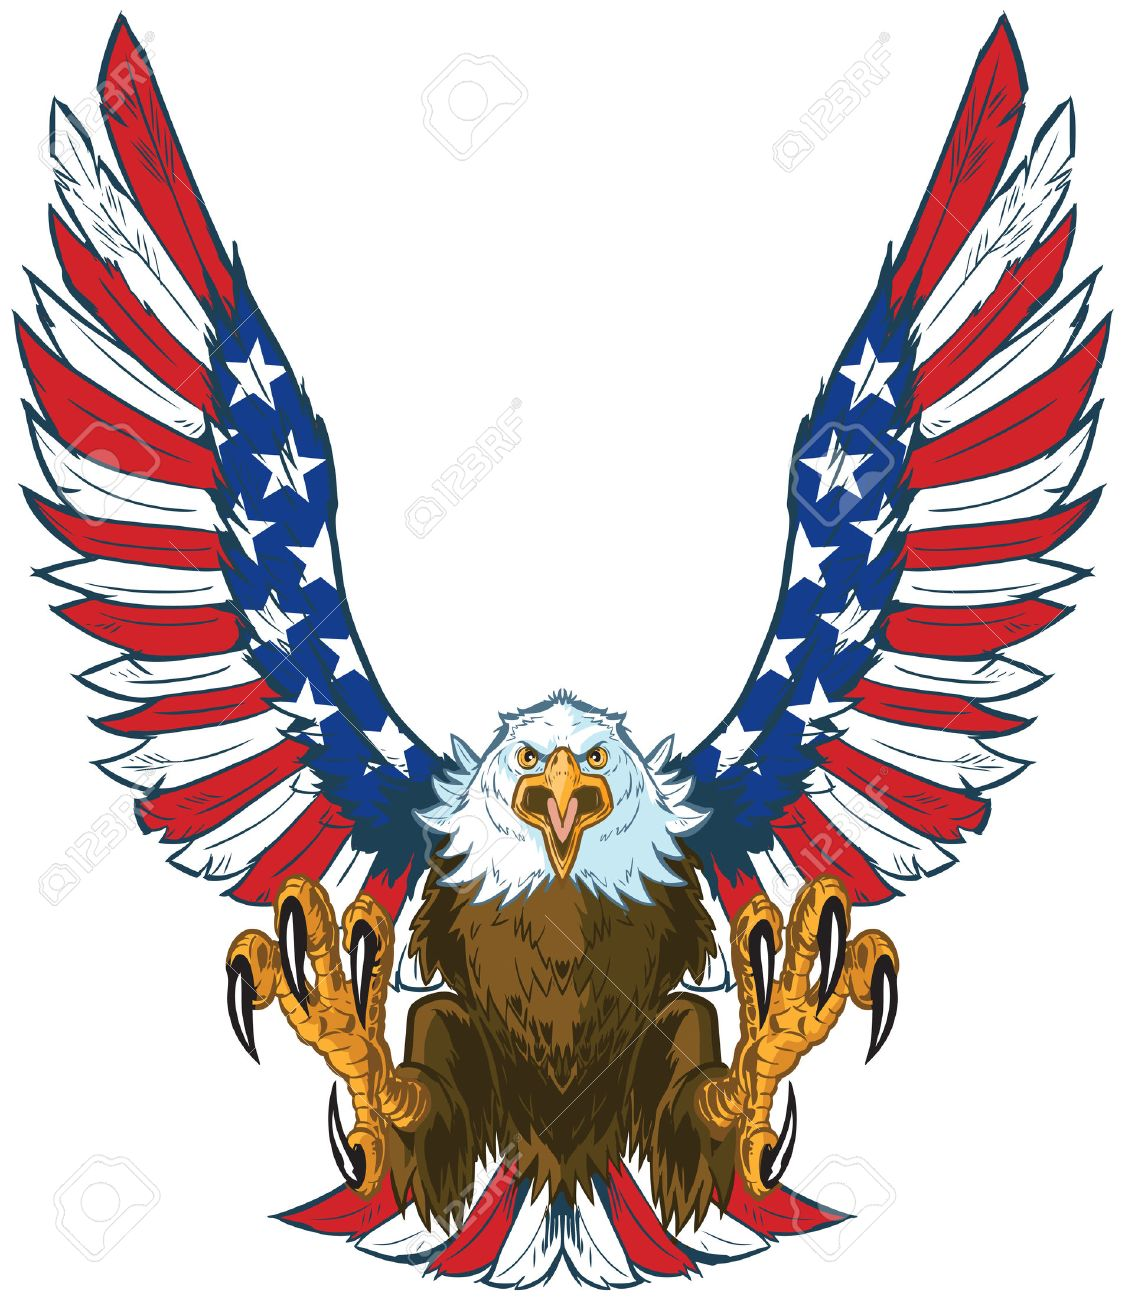 4 692 bald eagle stock vector illustration and royalty free bald rh 123rf com american eagle clipart png american eagle pictures clip art